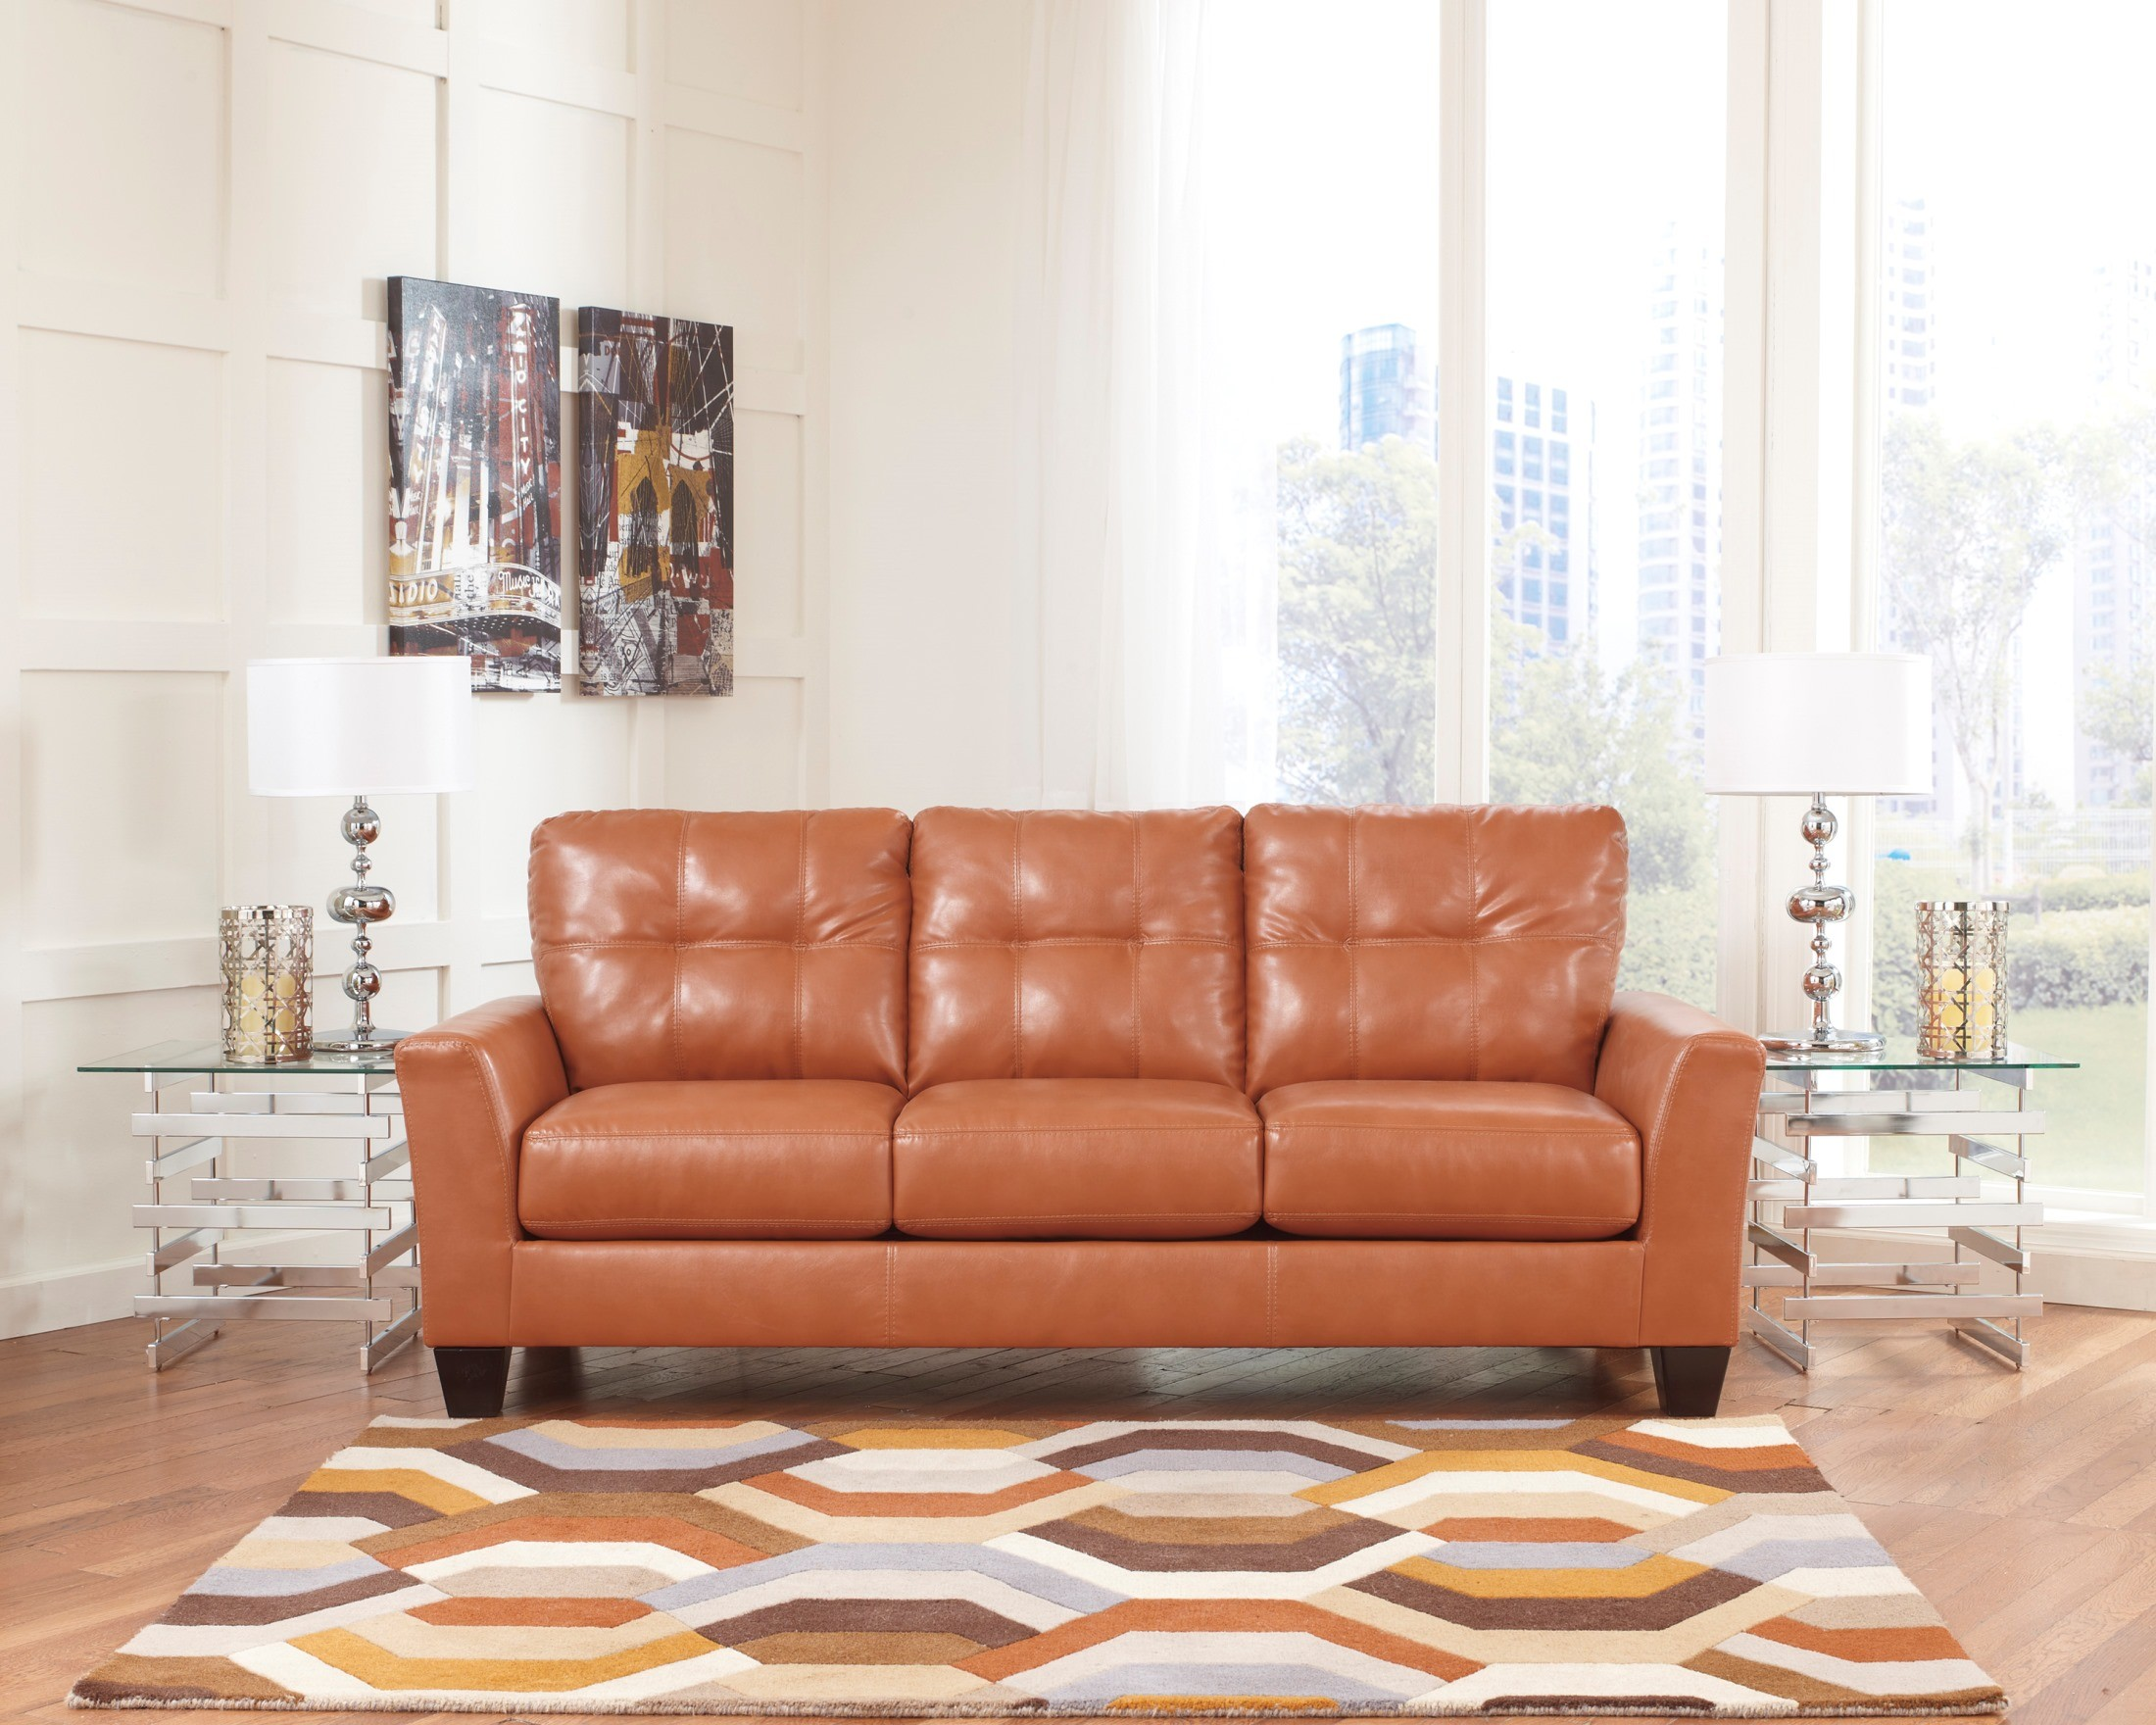 paulie durablend orange sofa from ashley 2700238. Black Bedroom Furniture Sets. Home Design Ideas